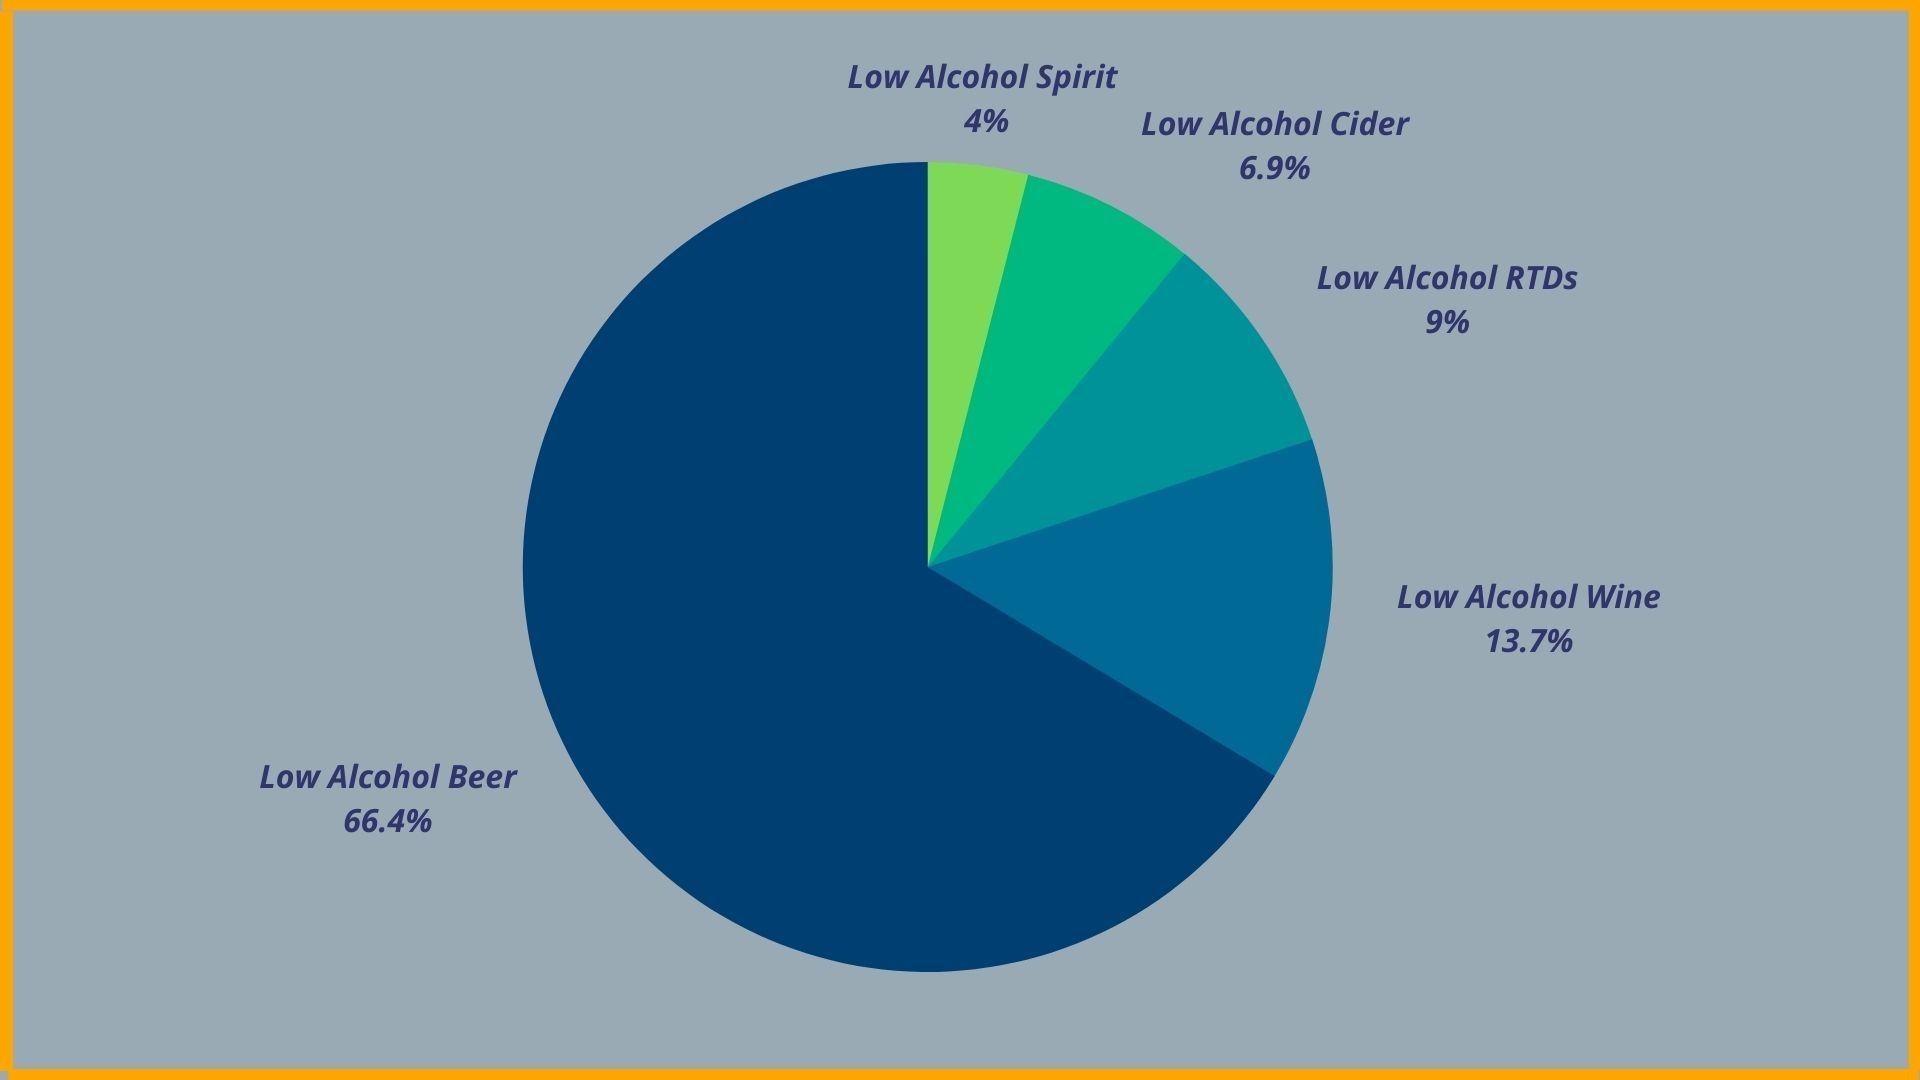 Distribution of Low Alcohol Beverages Market Worldwide